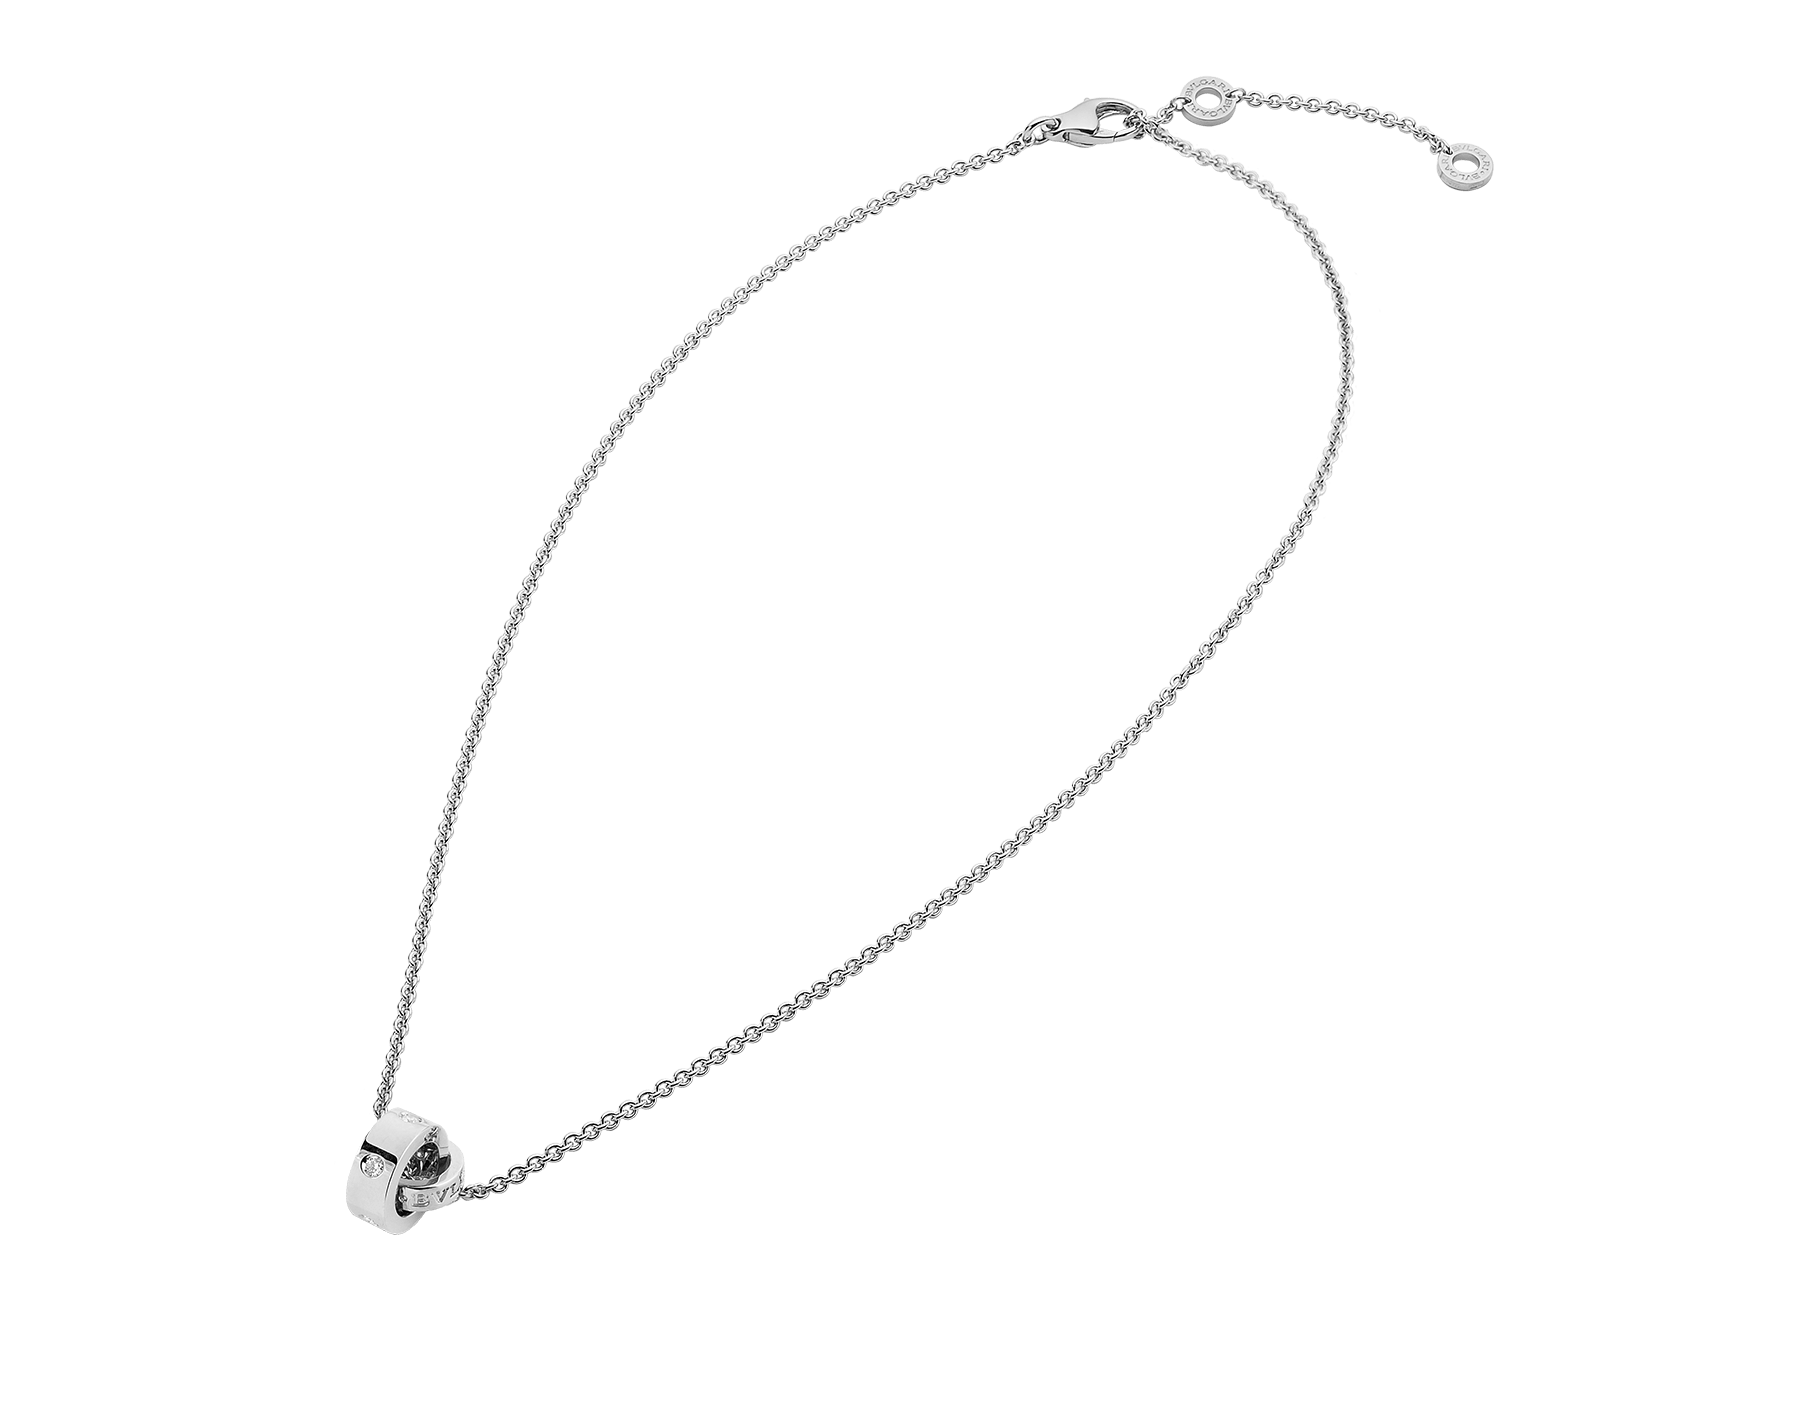 BVLGARI BVLGARI necklace with 18 kt white gold chain and 18 kt white gold pendant set with five diamonds (0.15 ct) 354029 image 2